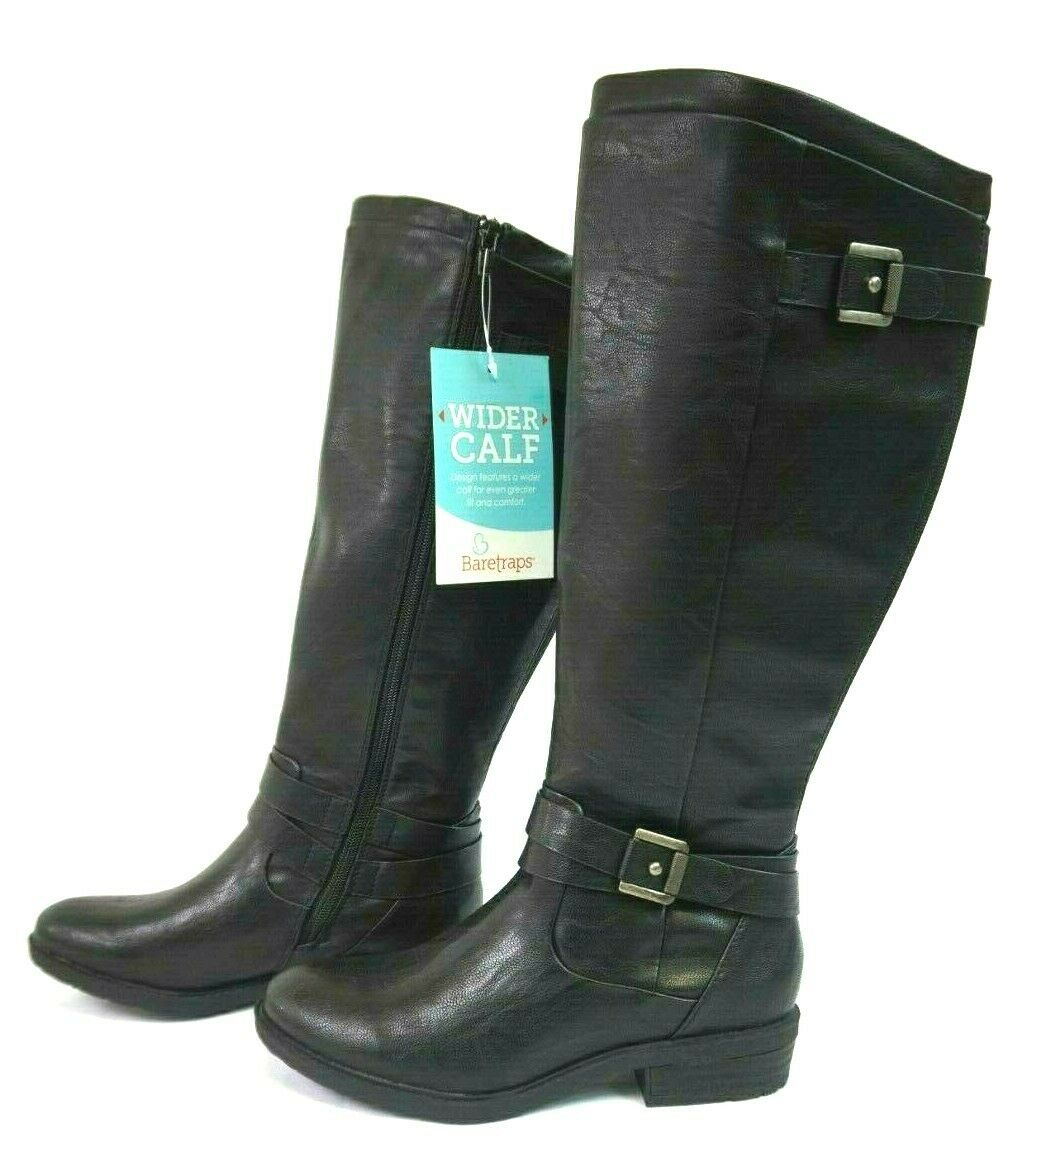 NIB Bare Traps Women's Black Yalina 2 Riding Boots 5.5, 9.5, 10